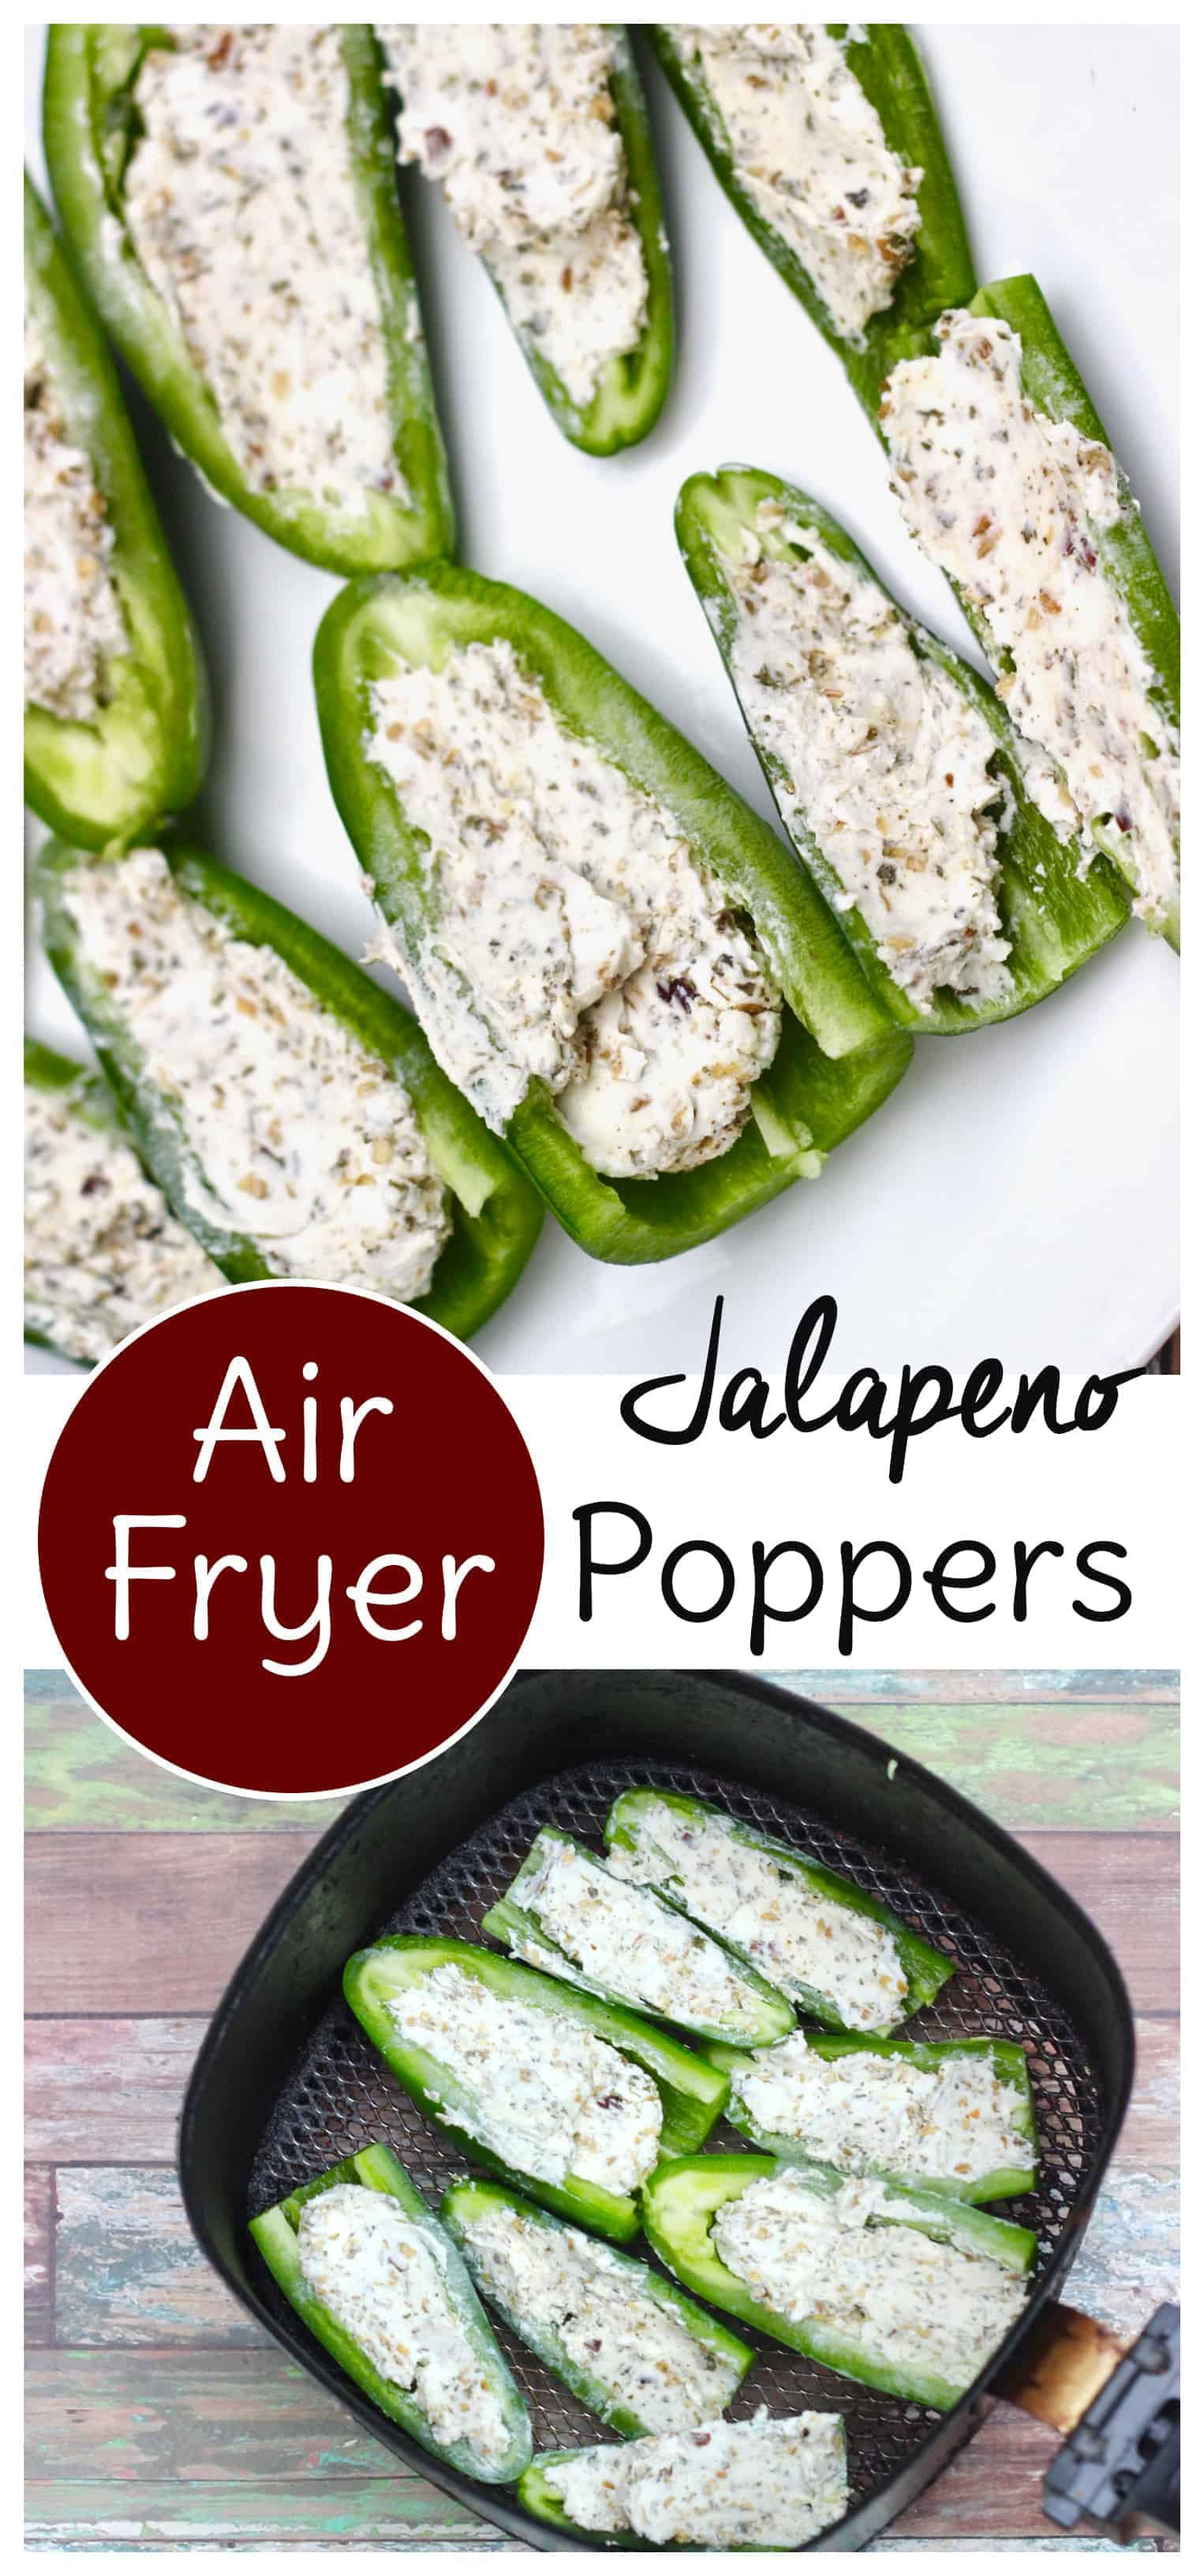 These Air Fryer jalapeno poppers are keto and gluten free! Use three simple ingredients to have them on the table in minutes. #keto #airfryer #glutenfree